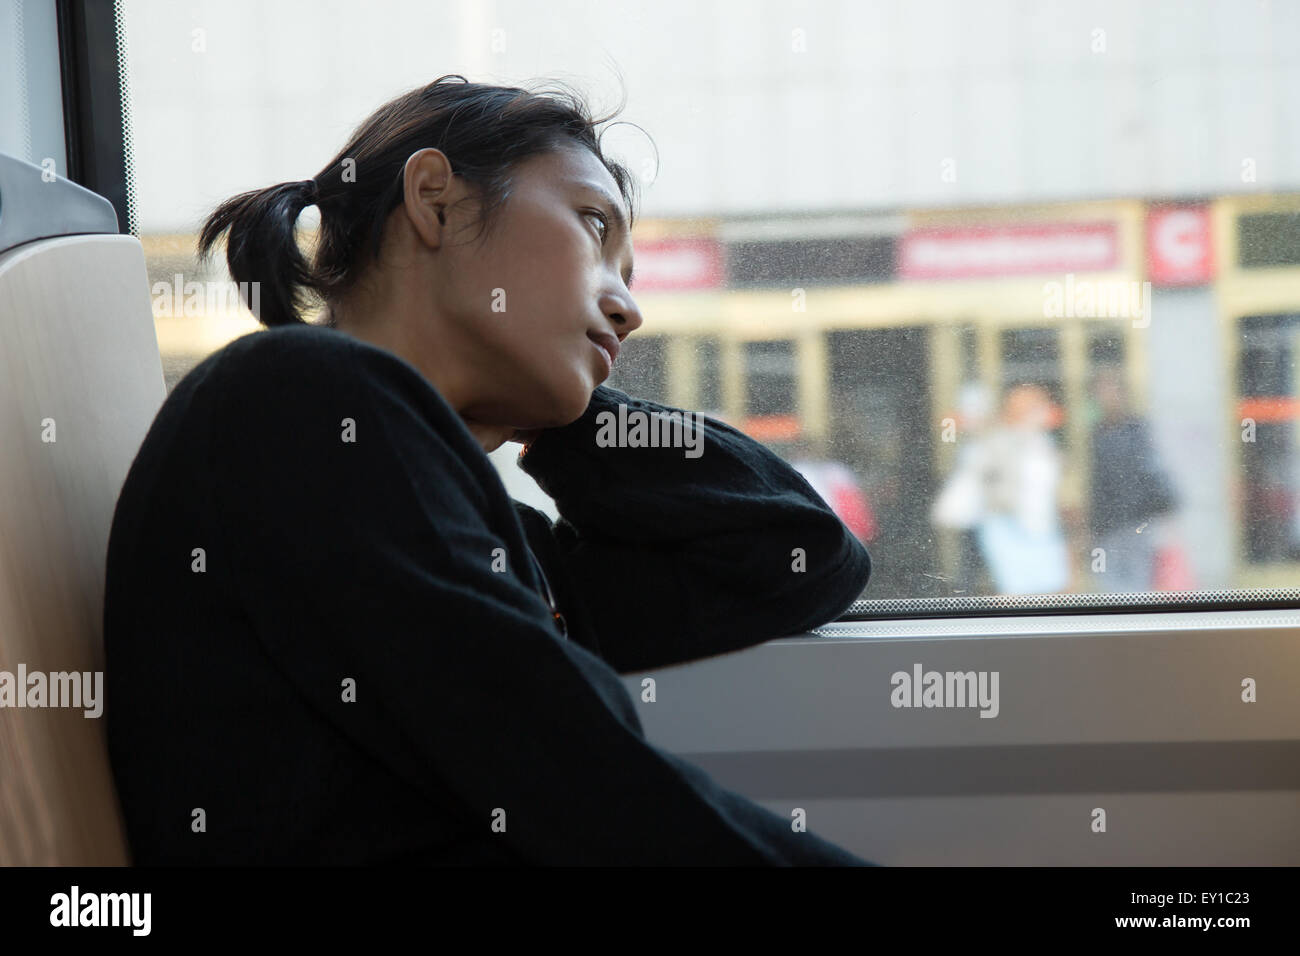 melancholic woman looks out the window of tram - Stock Image